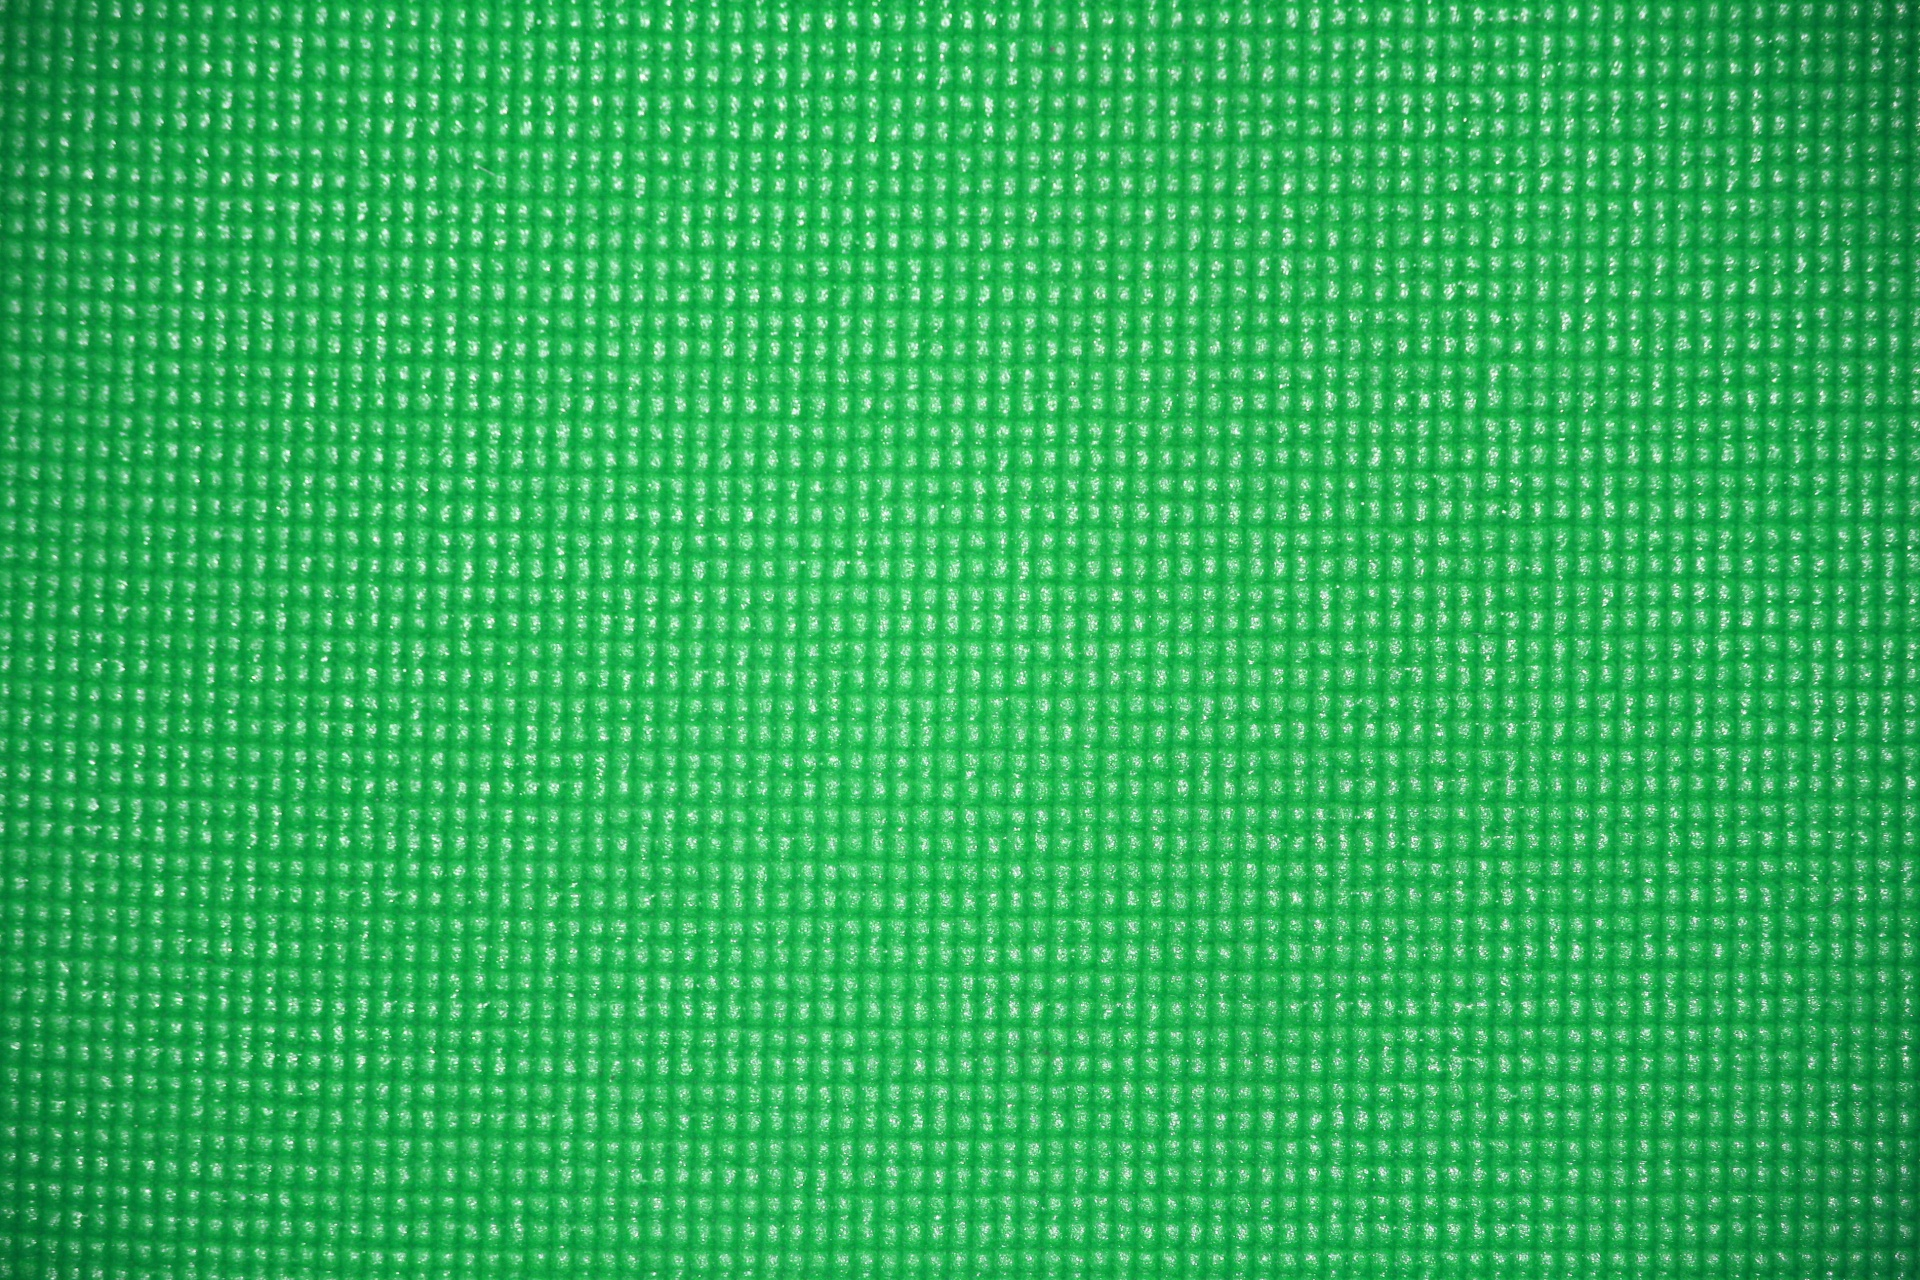 Abstract Vector Wallpaper Hd Green Background Texture Free Stock Photo Public Domain